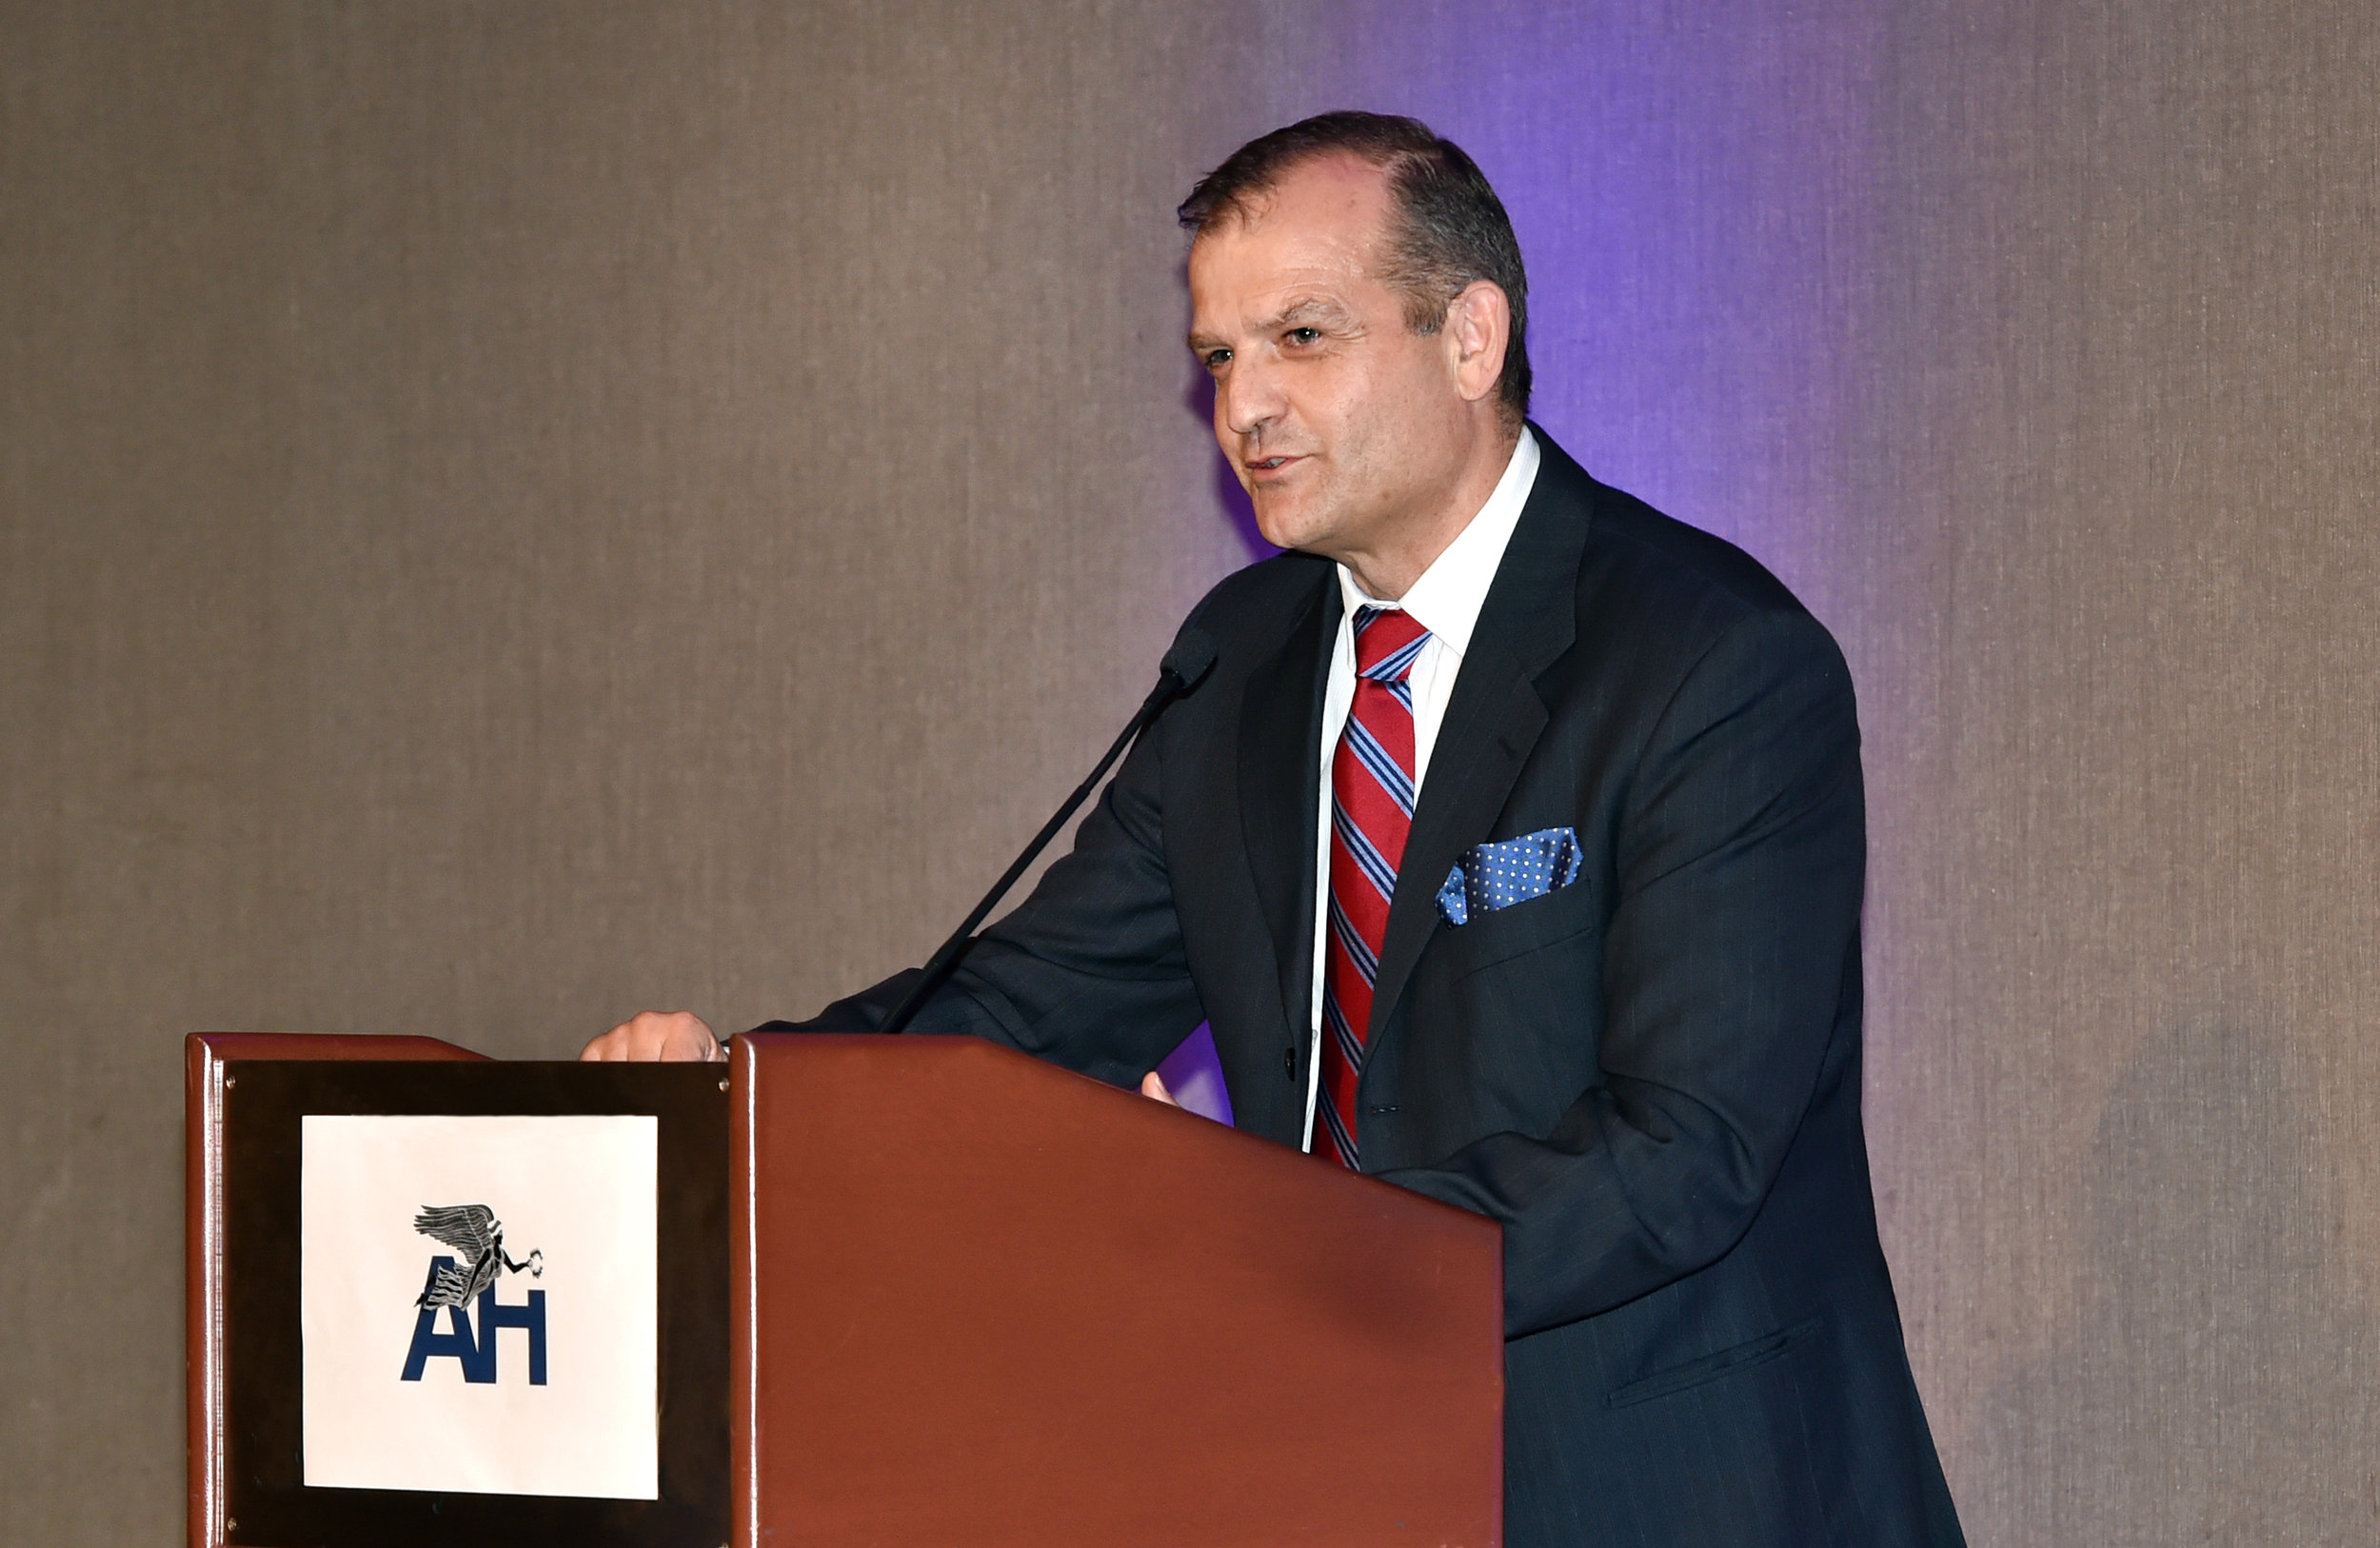 Col. Panagiotis Kavidopoulos, Defense Attache, Embassy of Greece to the United States.